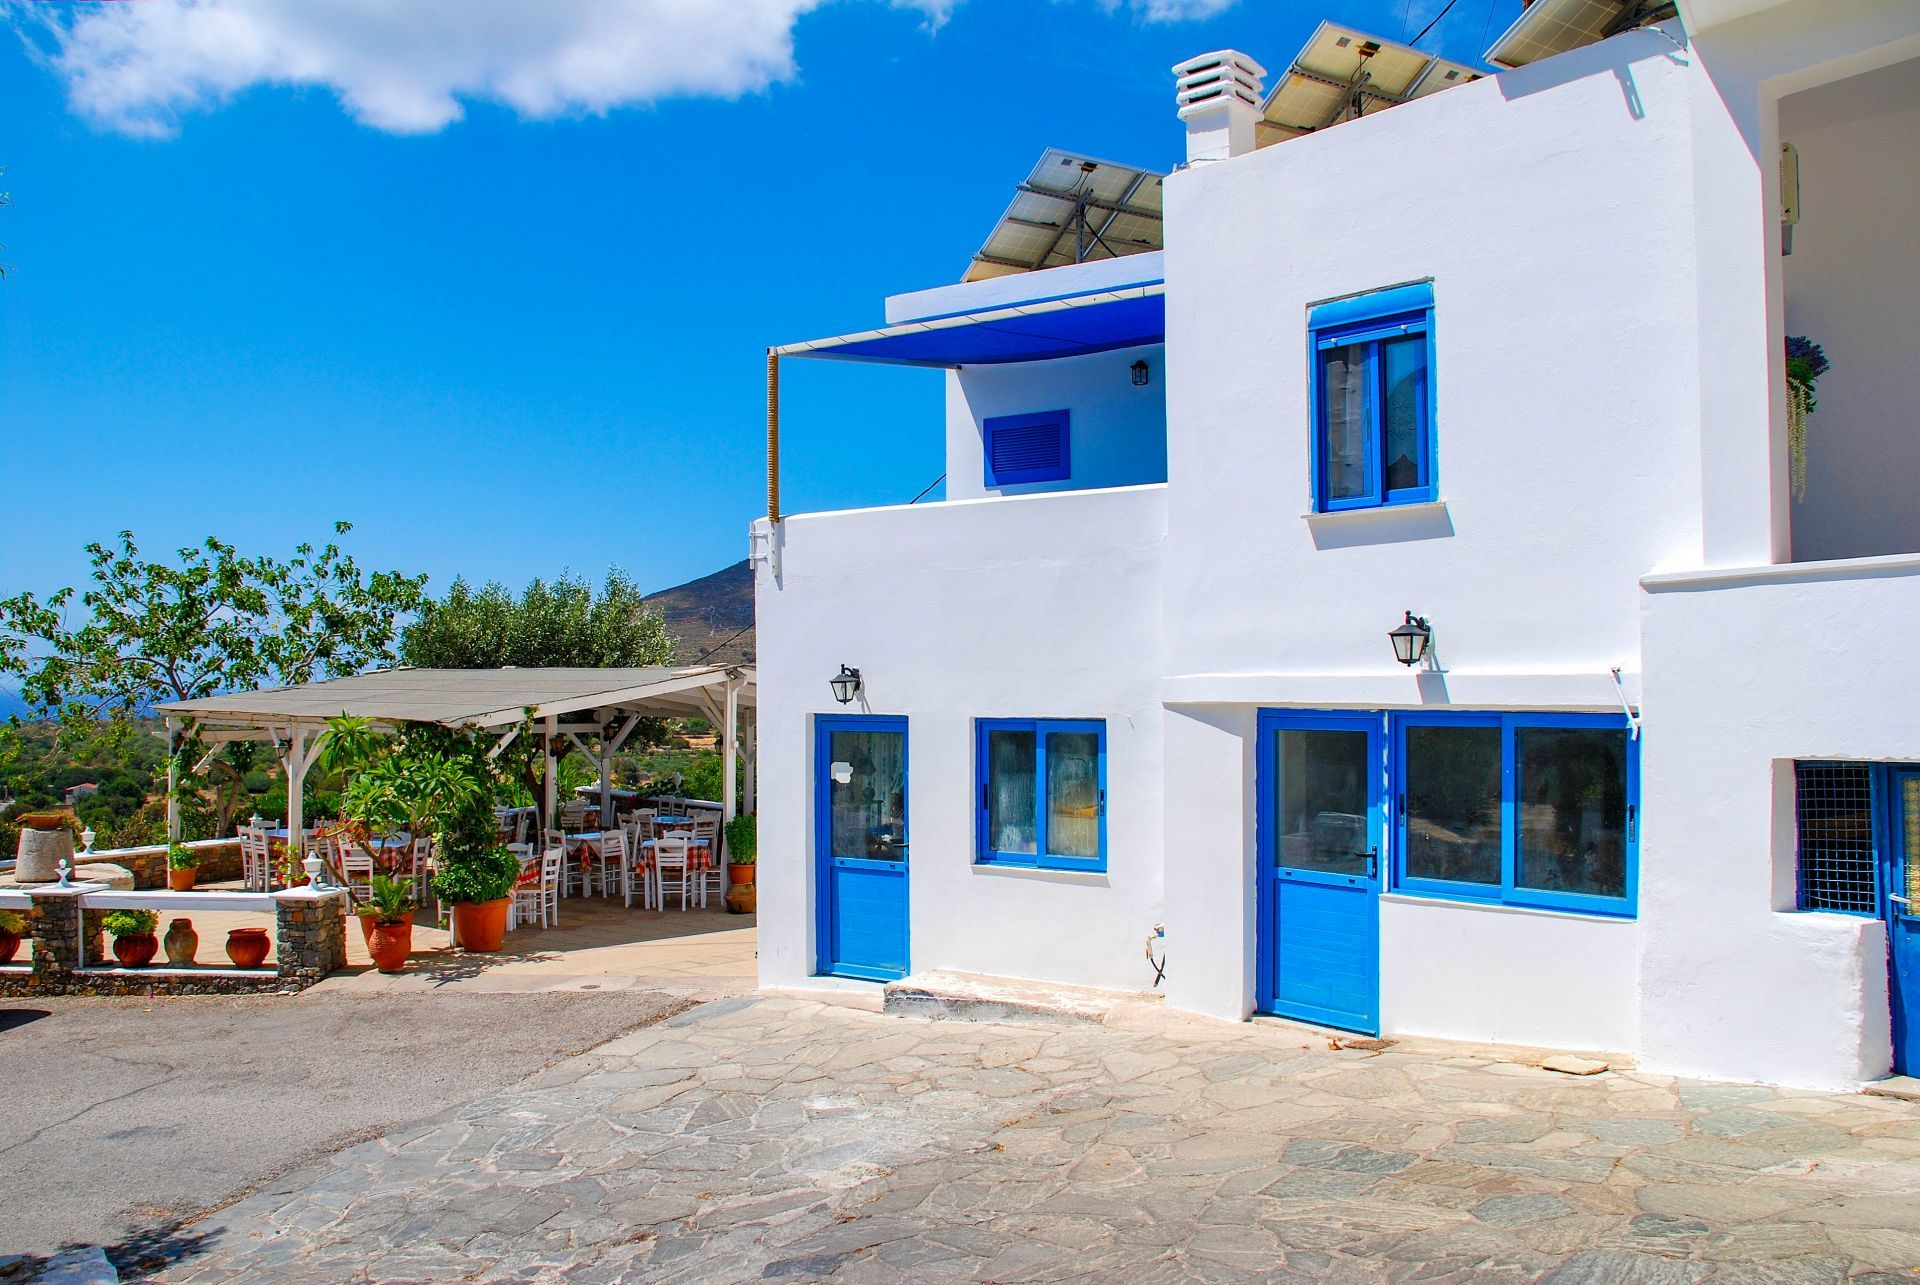 Places to eat and drink in Tilos